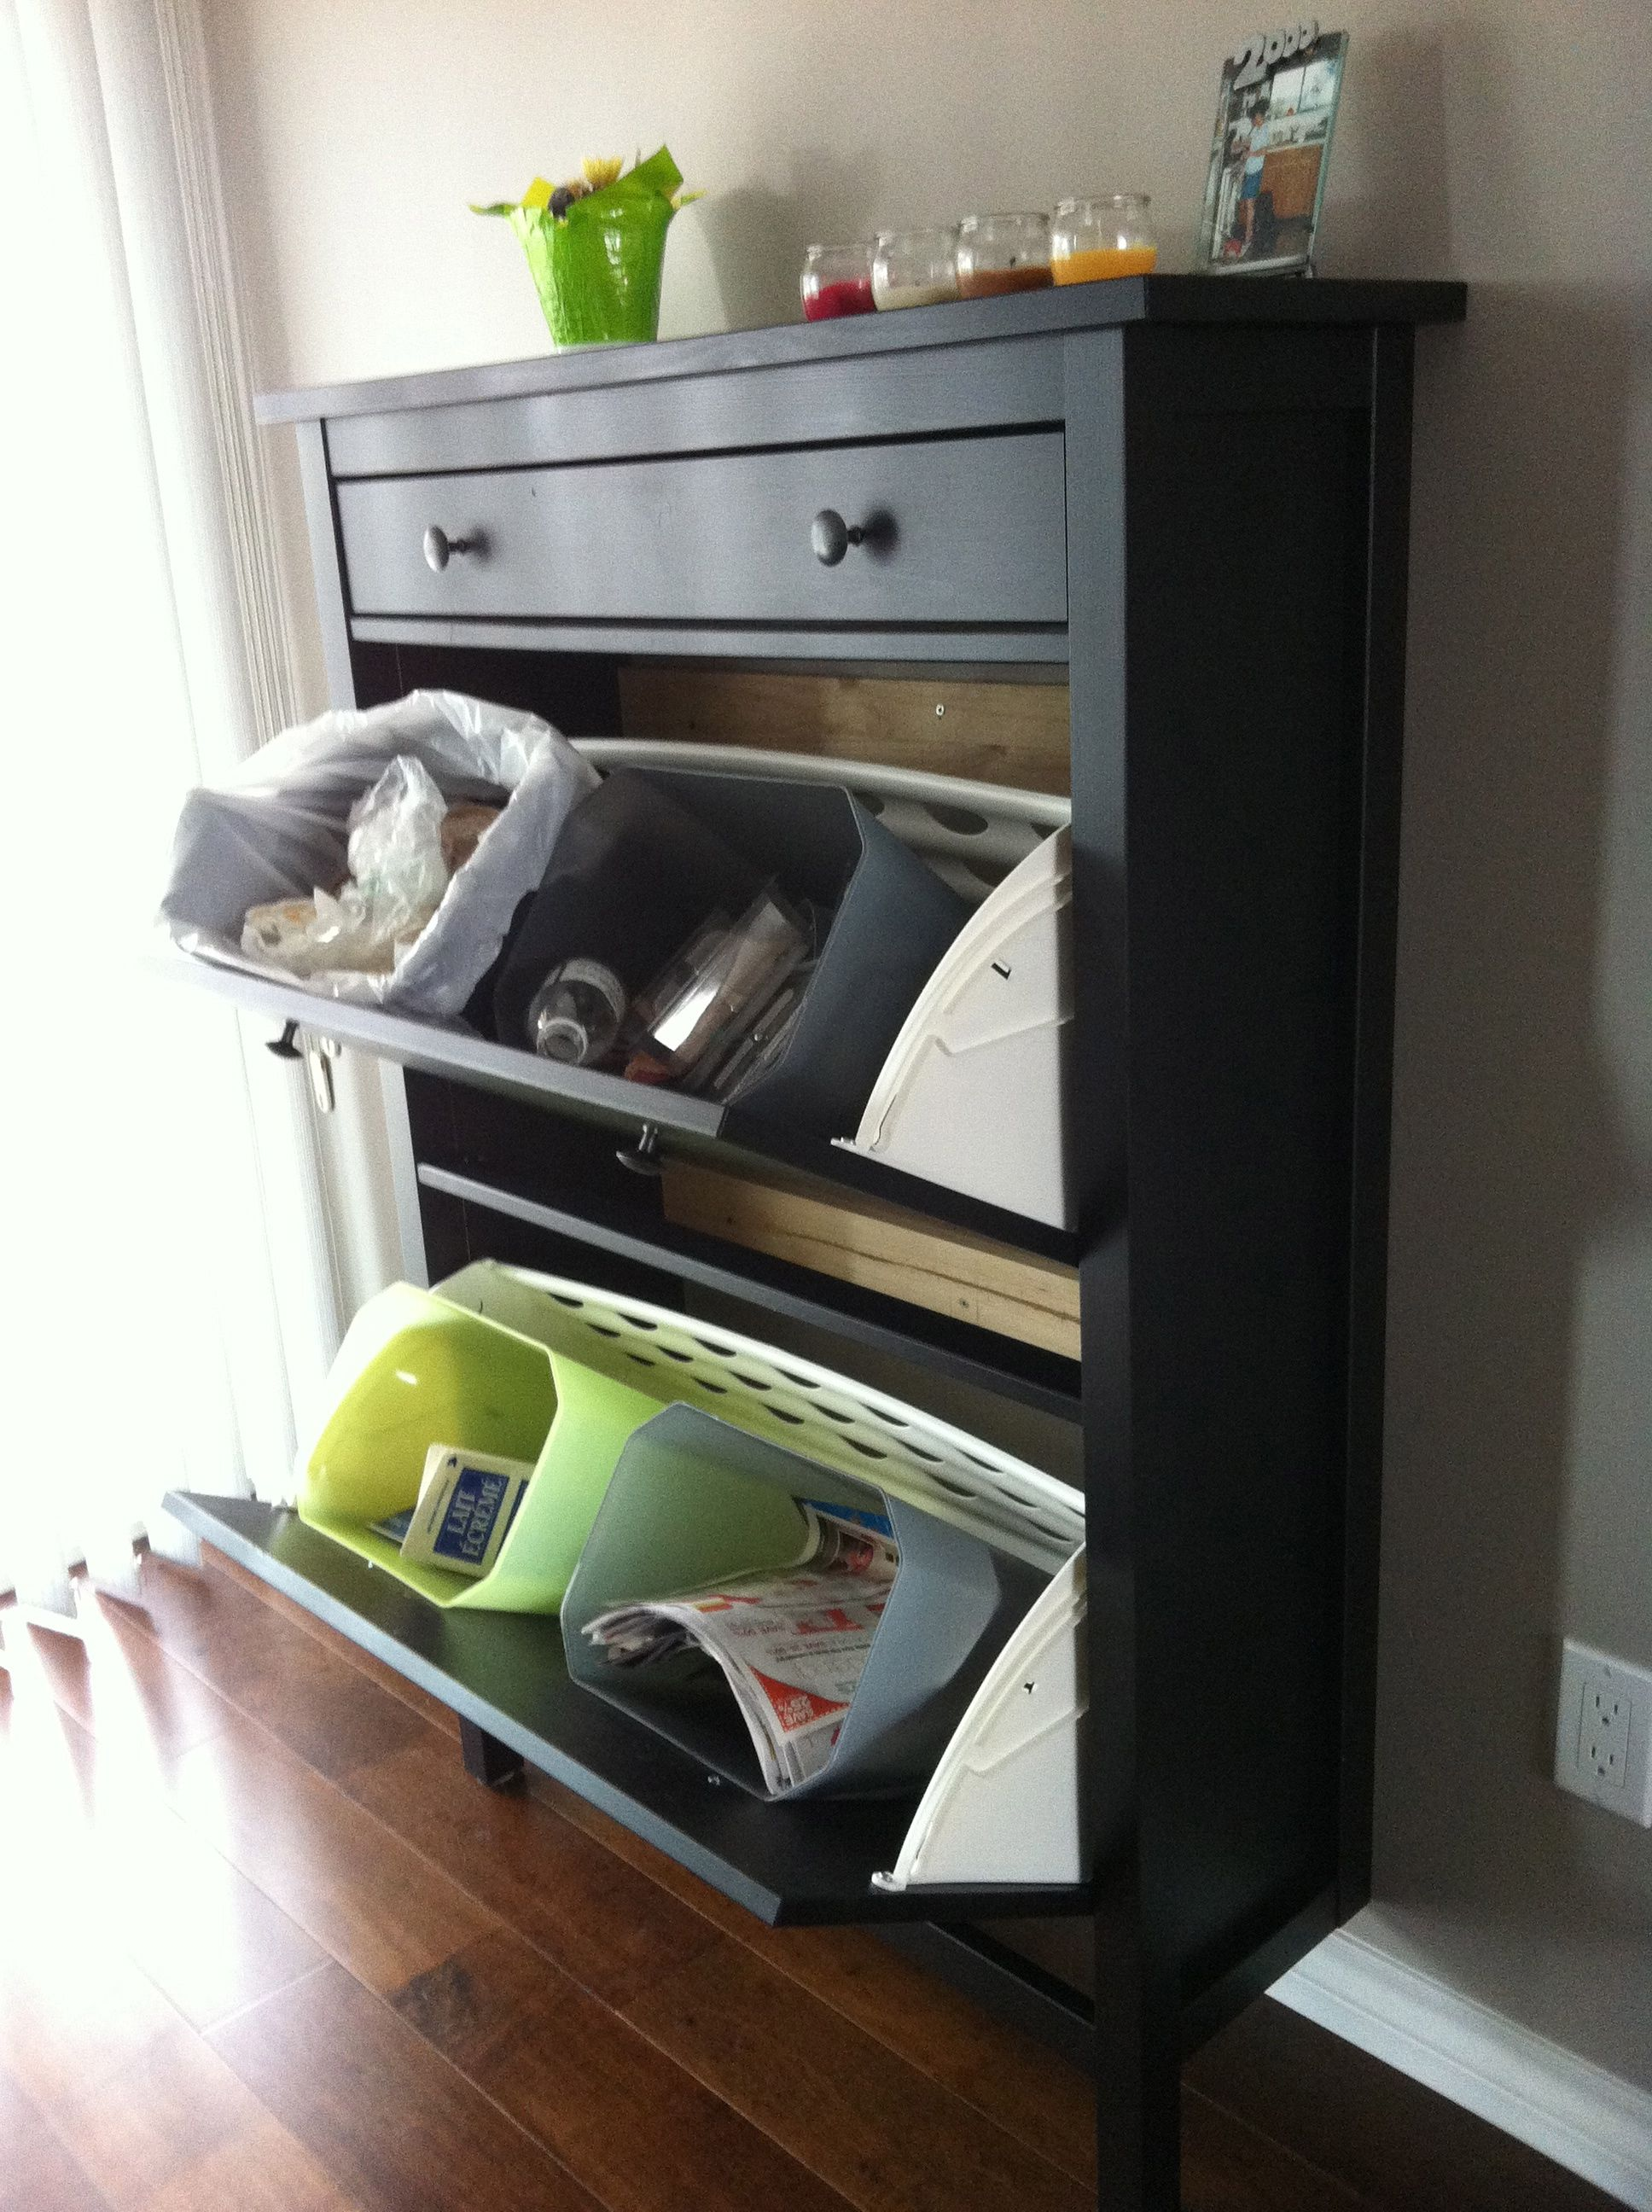 Epingle Par Colleen Sur Home Remodel Deco Rangement Ikea Rangement